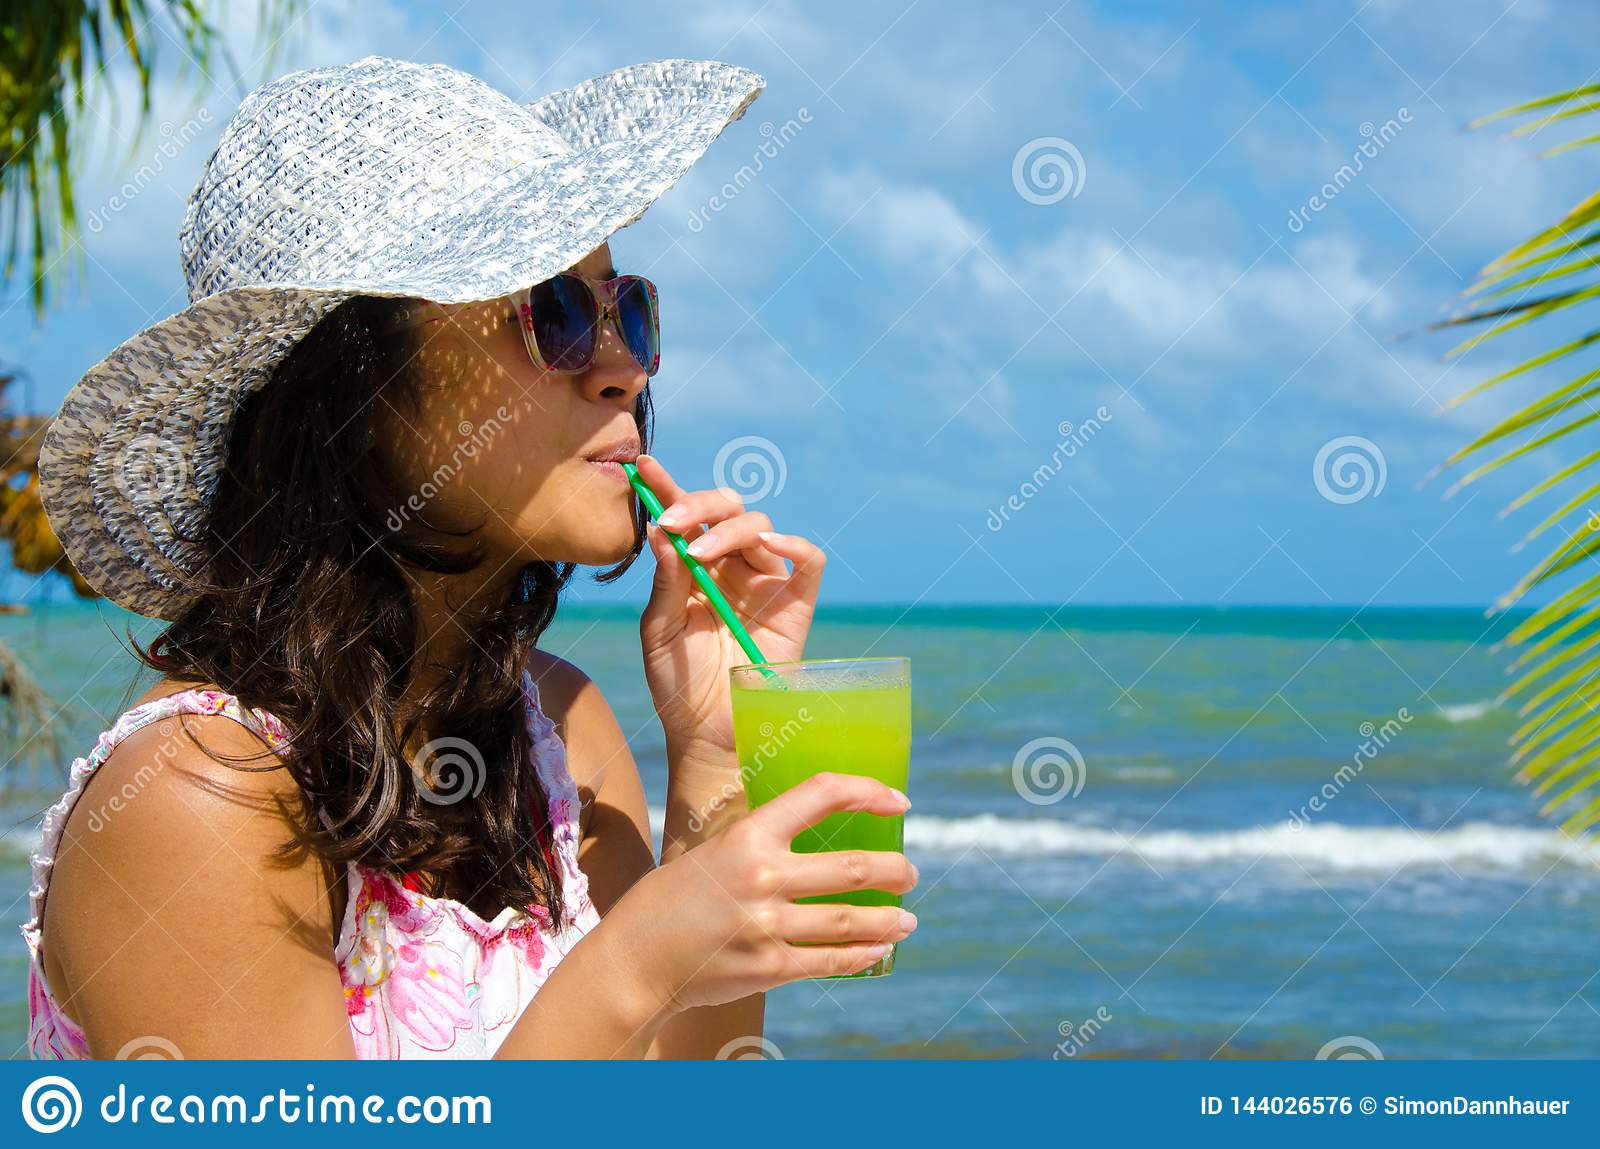 Refreshing Cocktail at beach in Belize - recreation in tropical destination for vacation - paradise coast